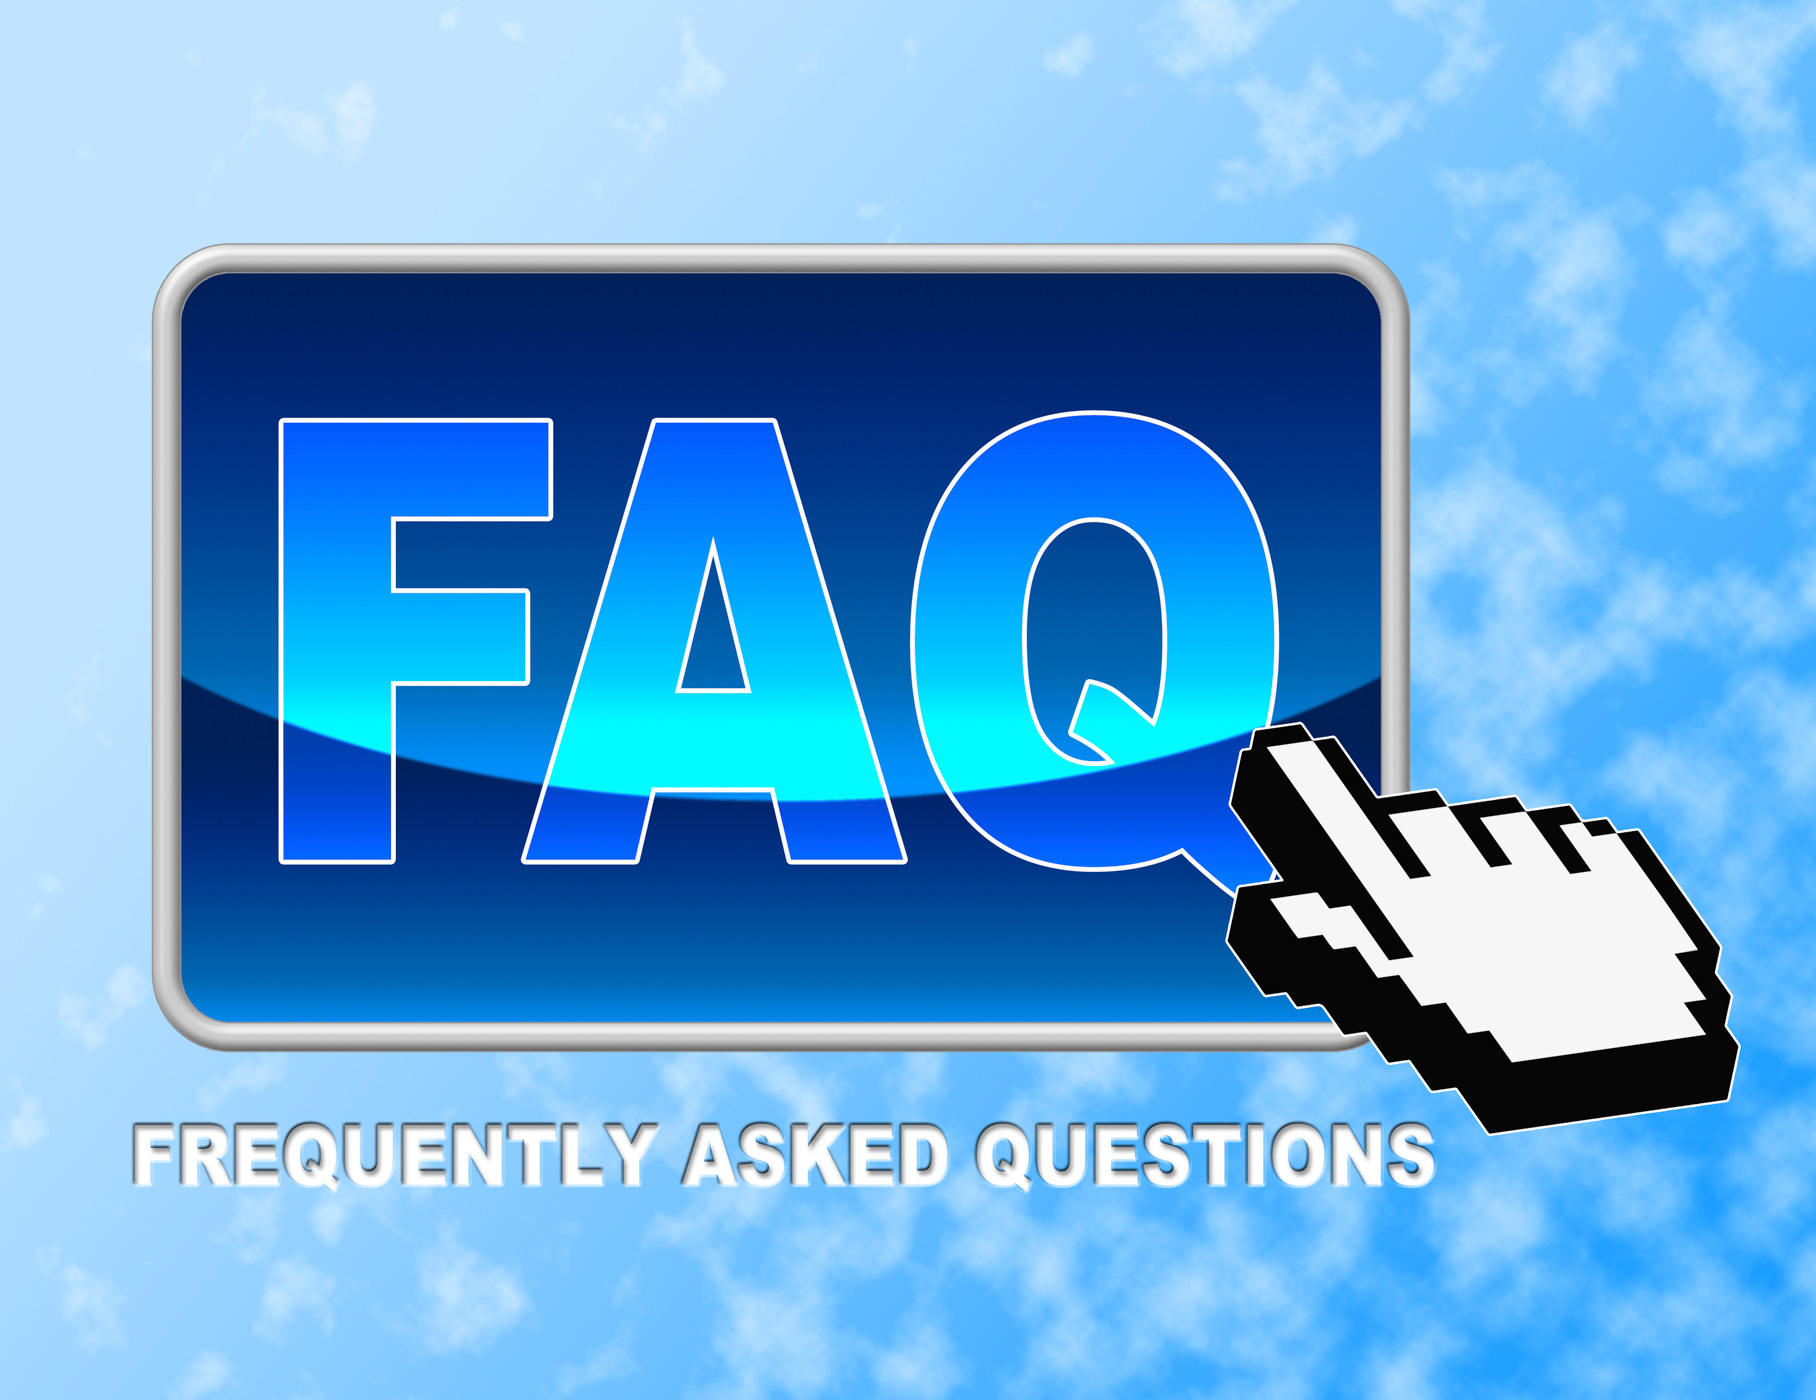 Faq button shows frequently asked questions and answer photo